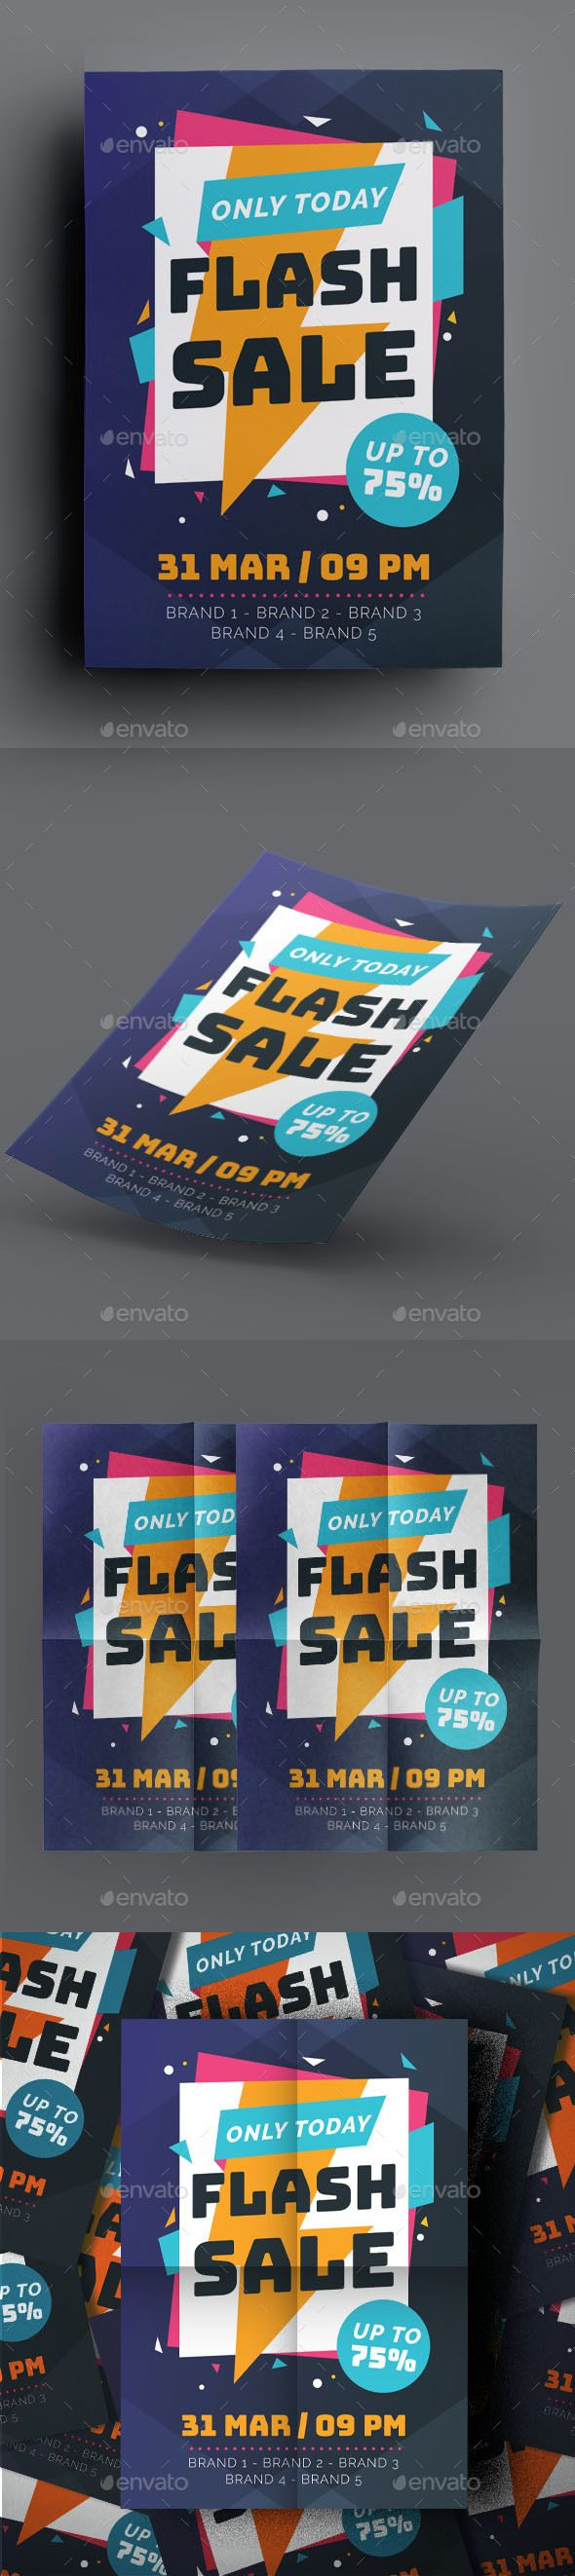 Download Flash Sale Flyer - Flyers Print Templates Download here ...